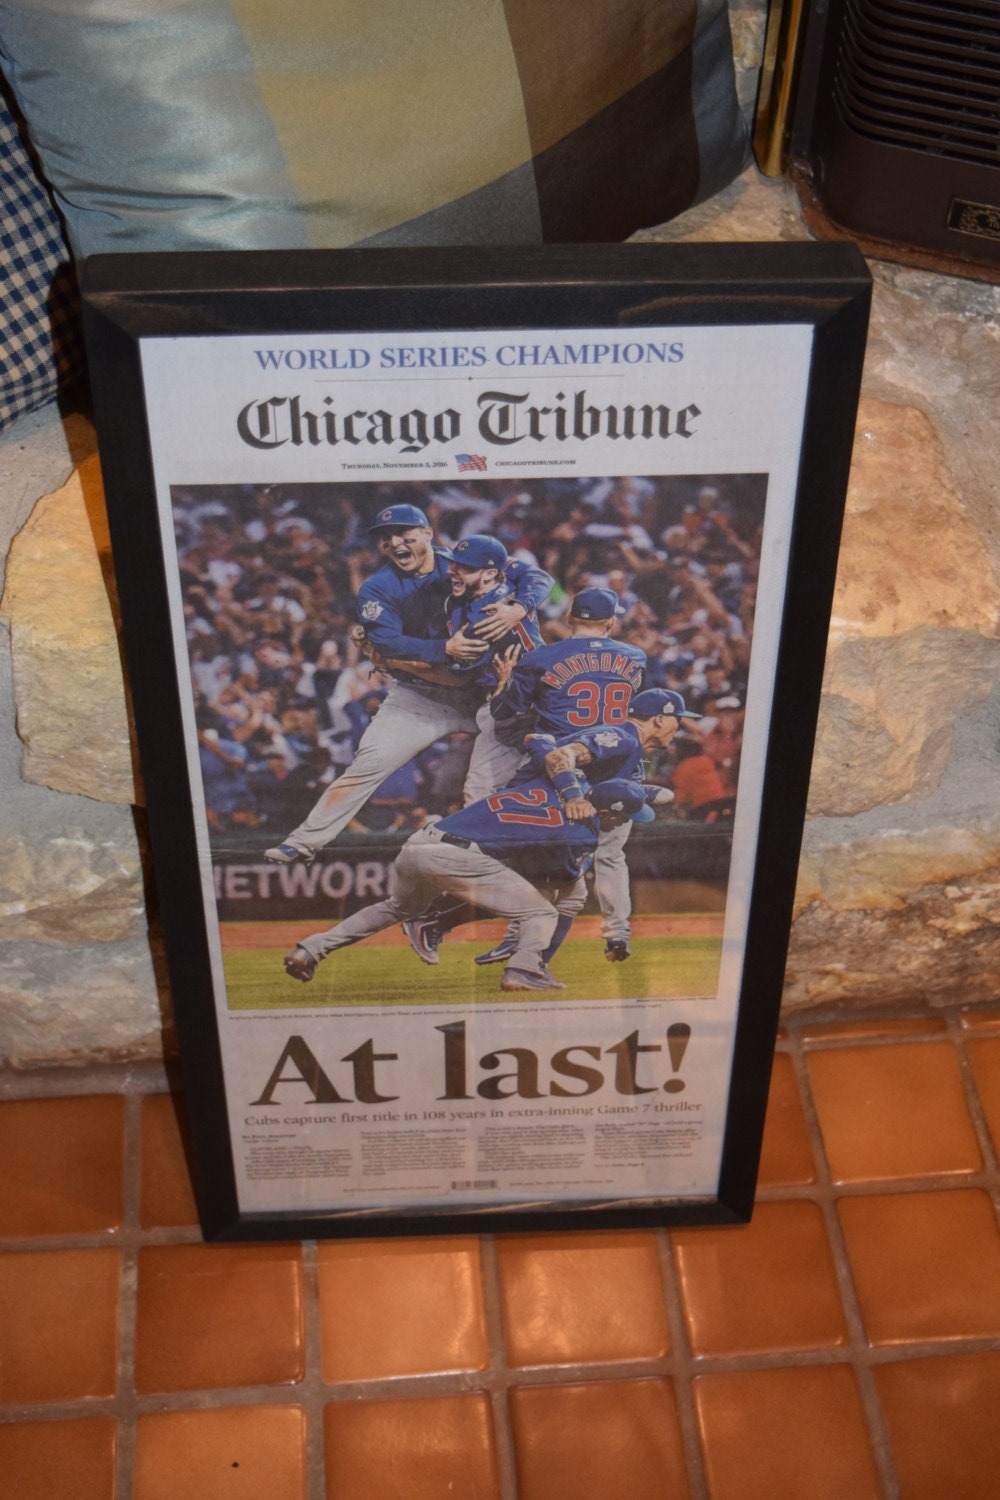 c585a37c44a FREE SHIPPING Chicago Cubs 2016 World Series Champions Custom framed  original newspaper complete paper mounted Chicago Tribune